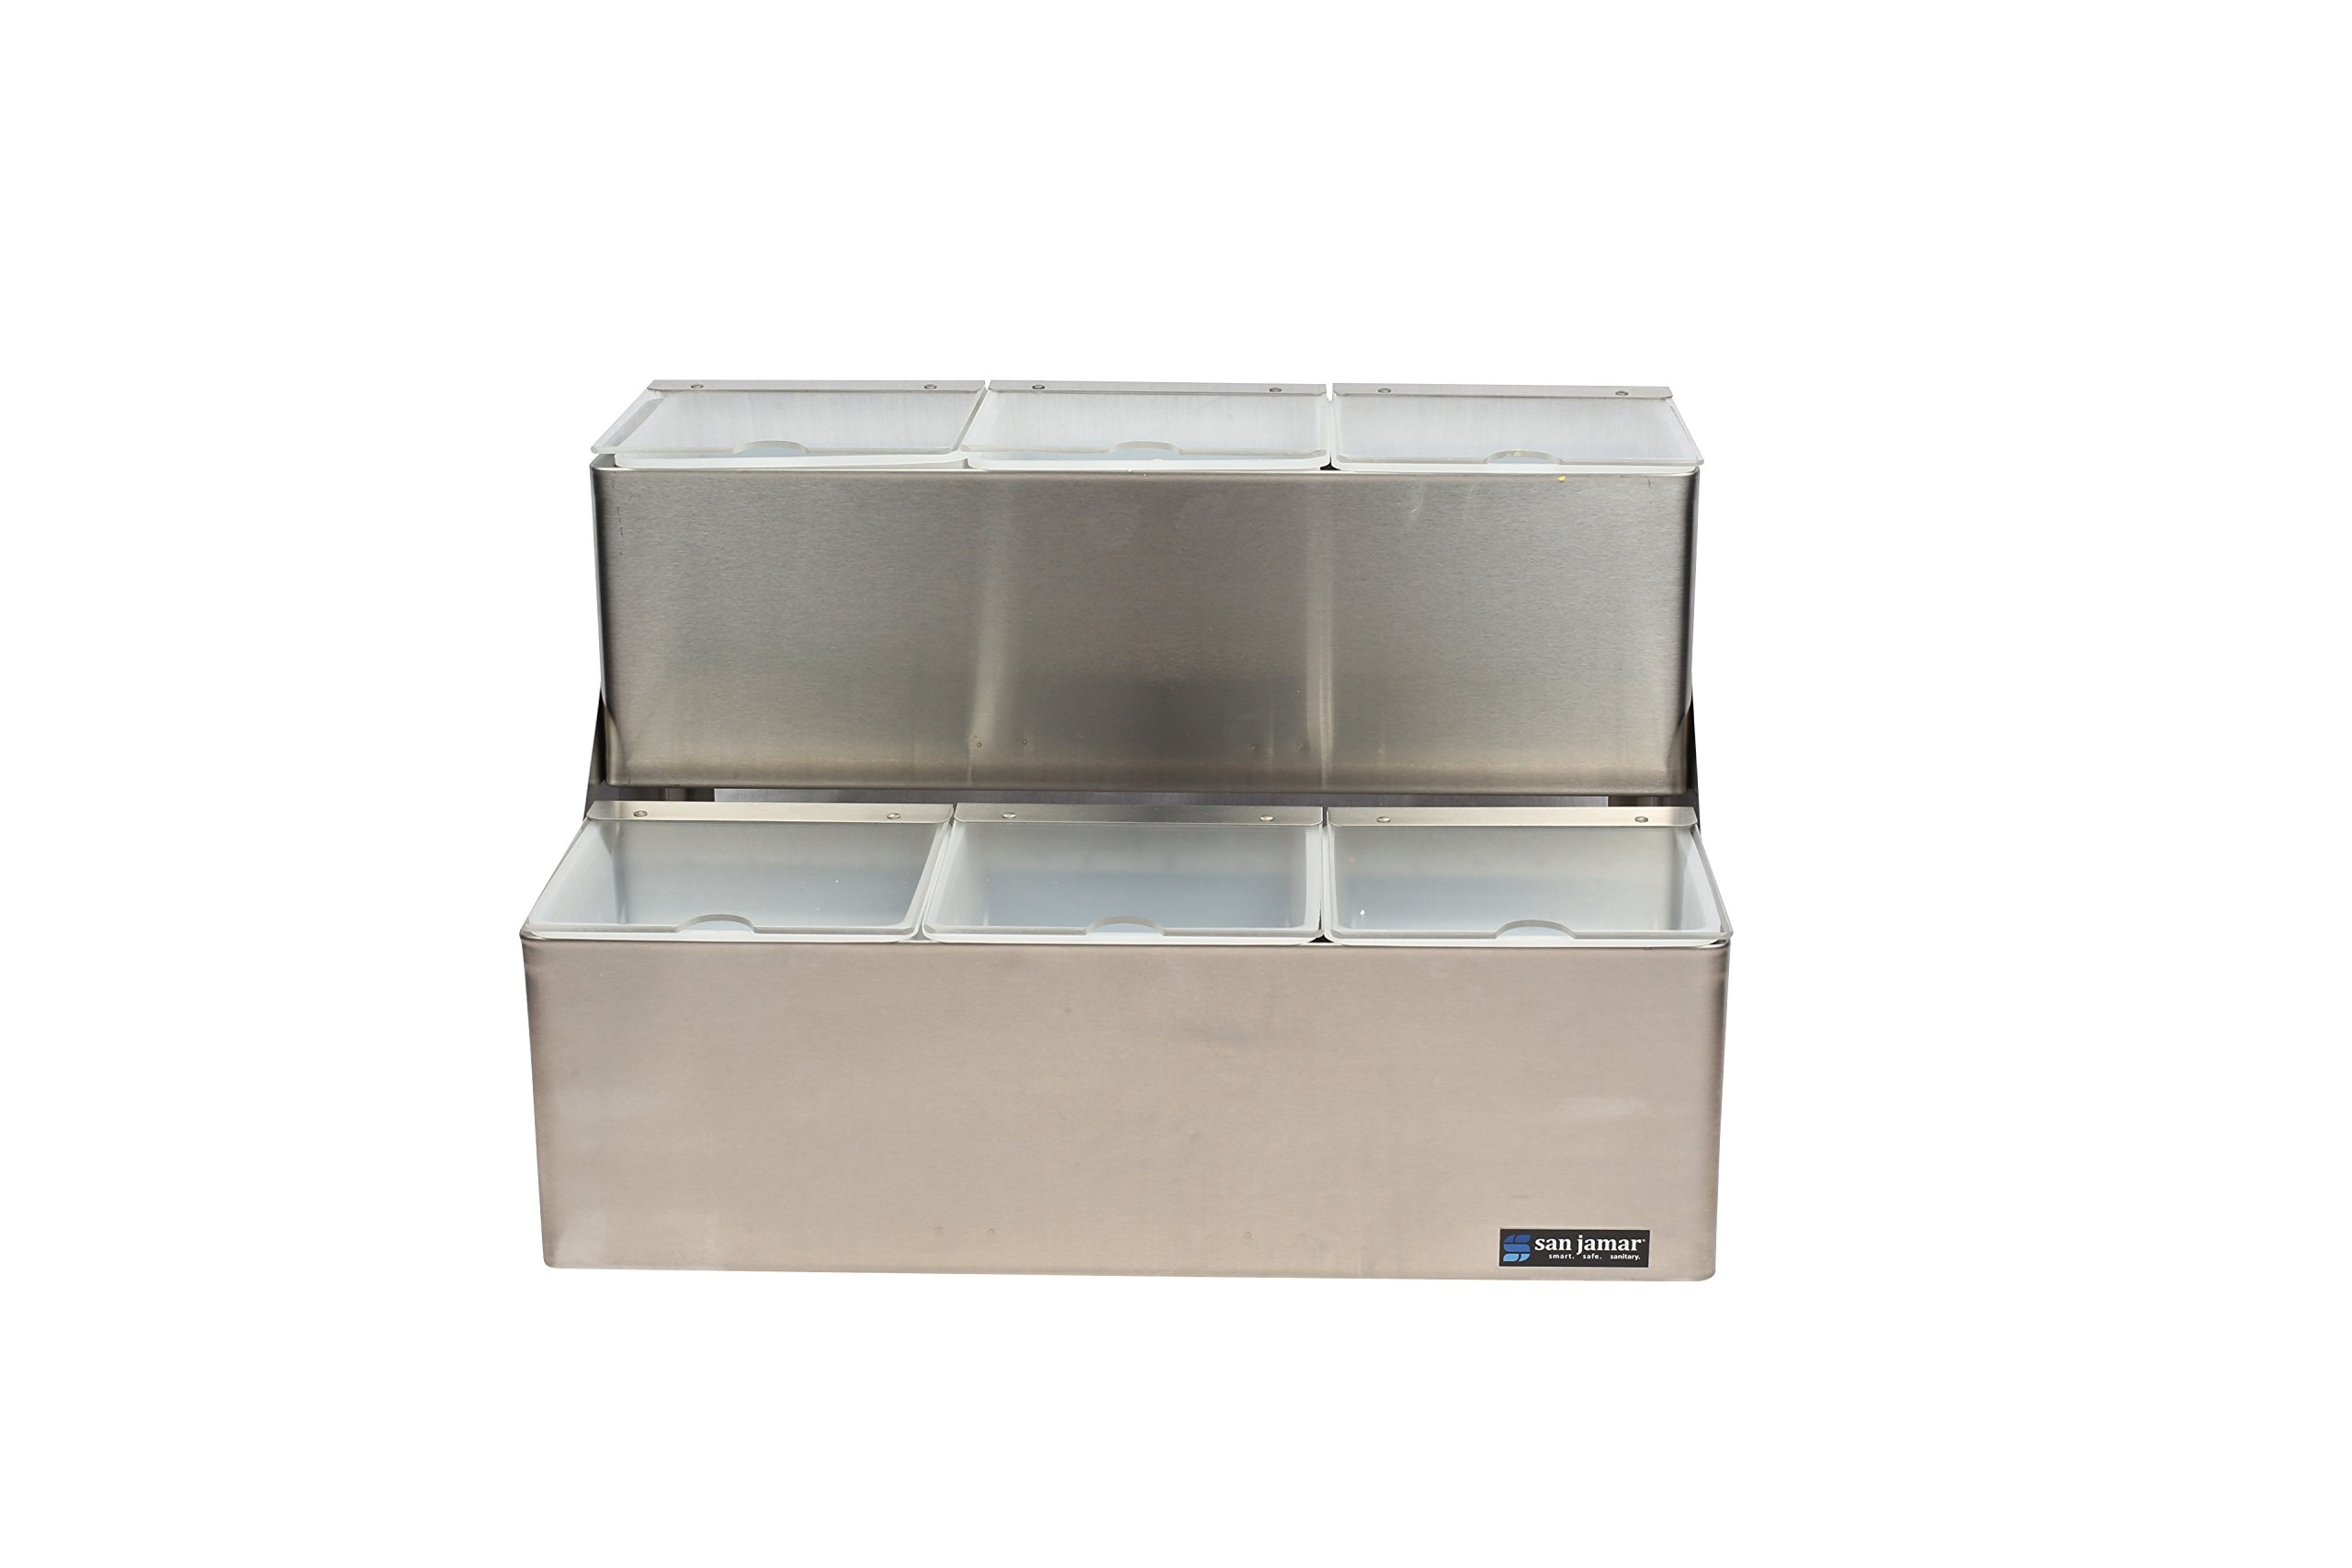 San Jamar B6706INL EZ-Chill Stainless Steel Stepped Center with Individual Notched Lid, 18'' Width x 12-5/8'' Height x 12'' Depth